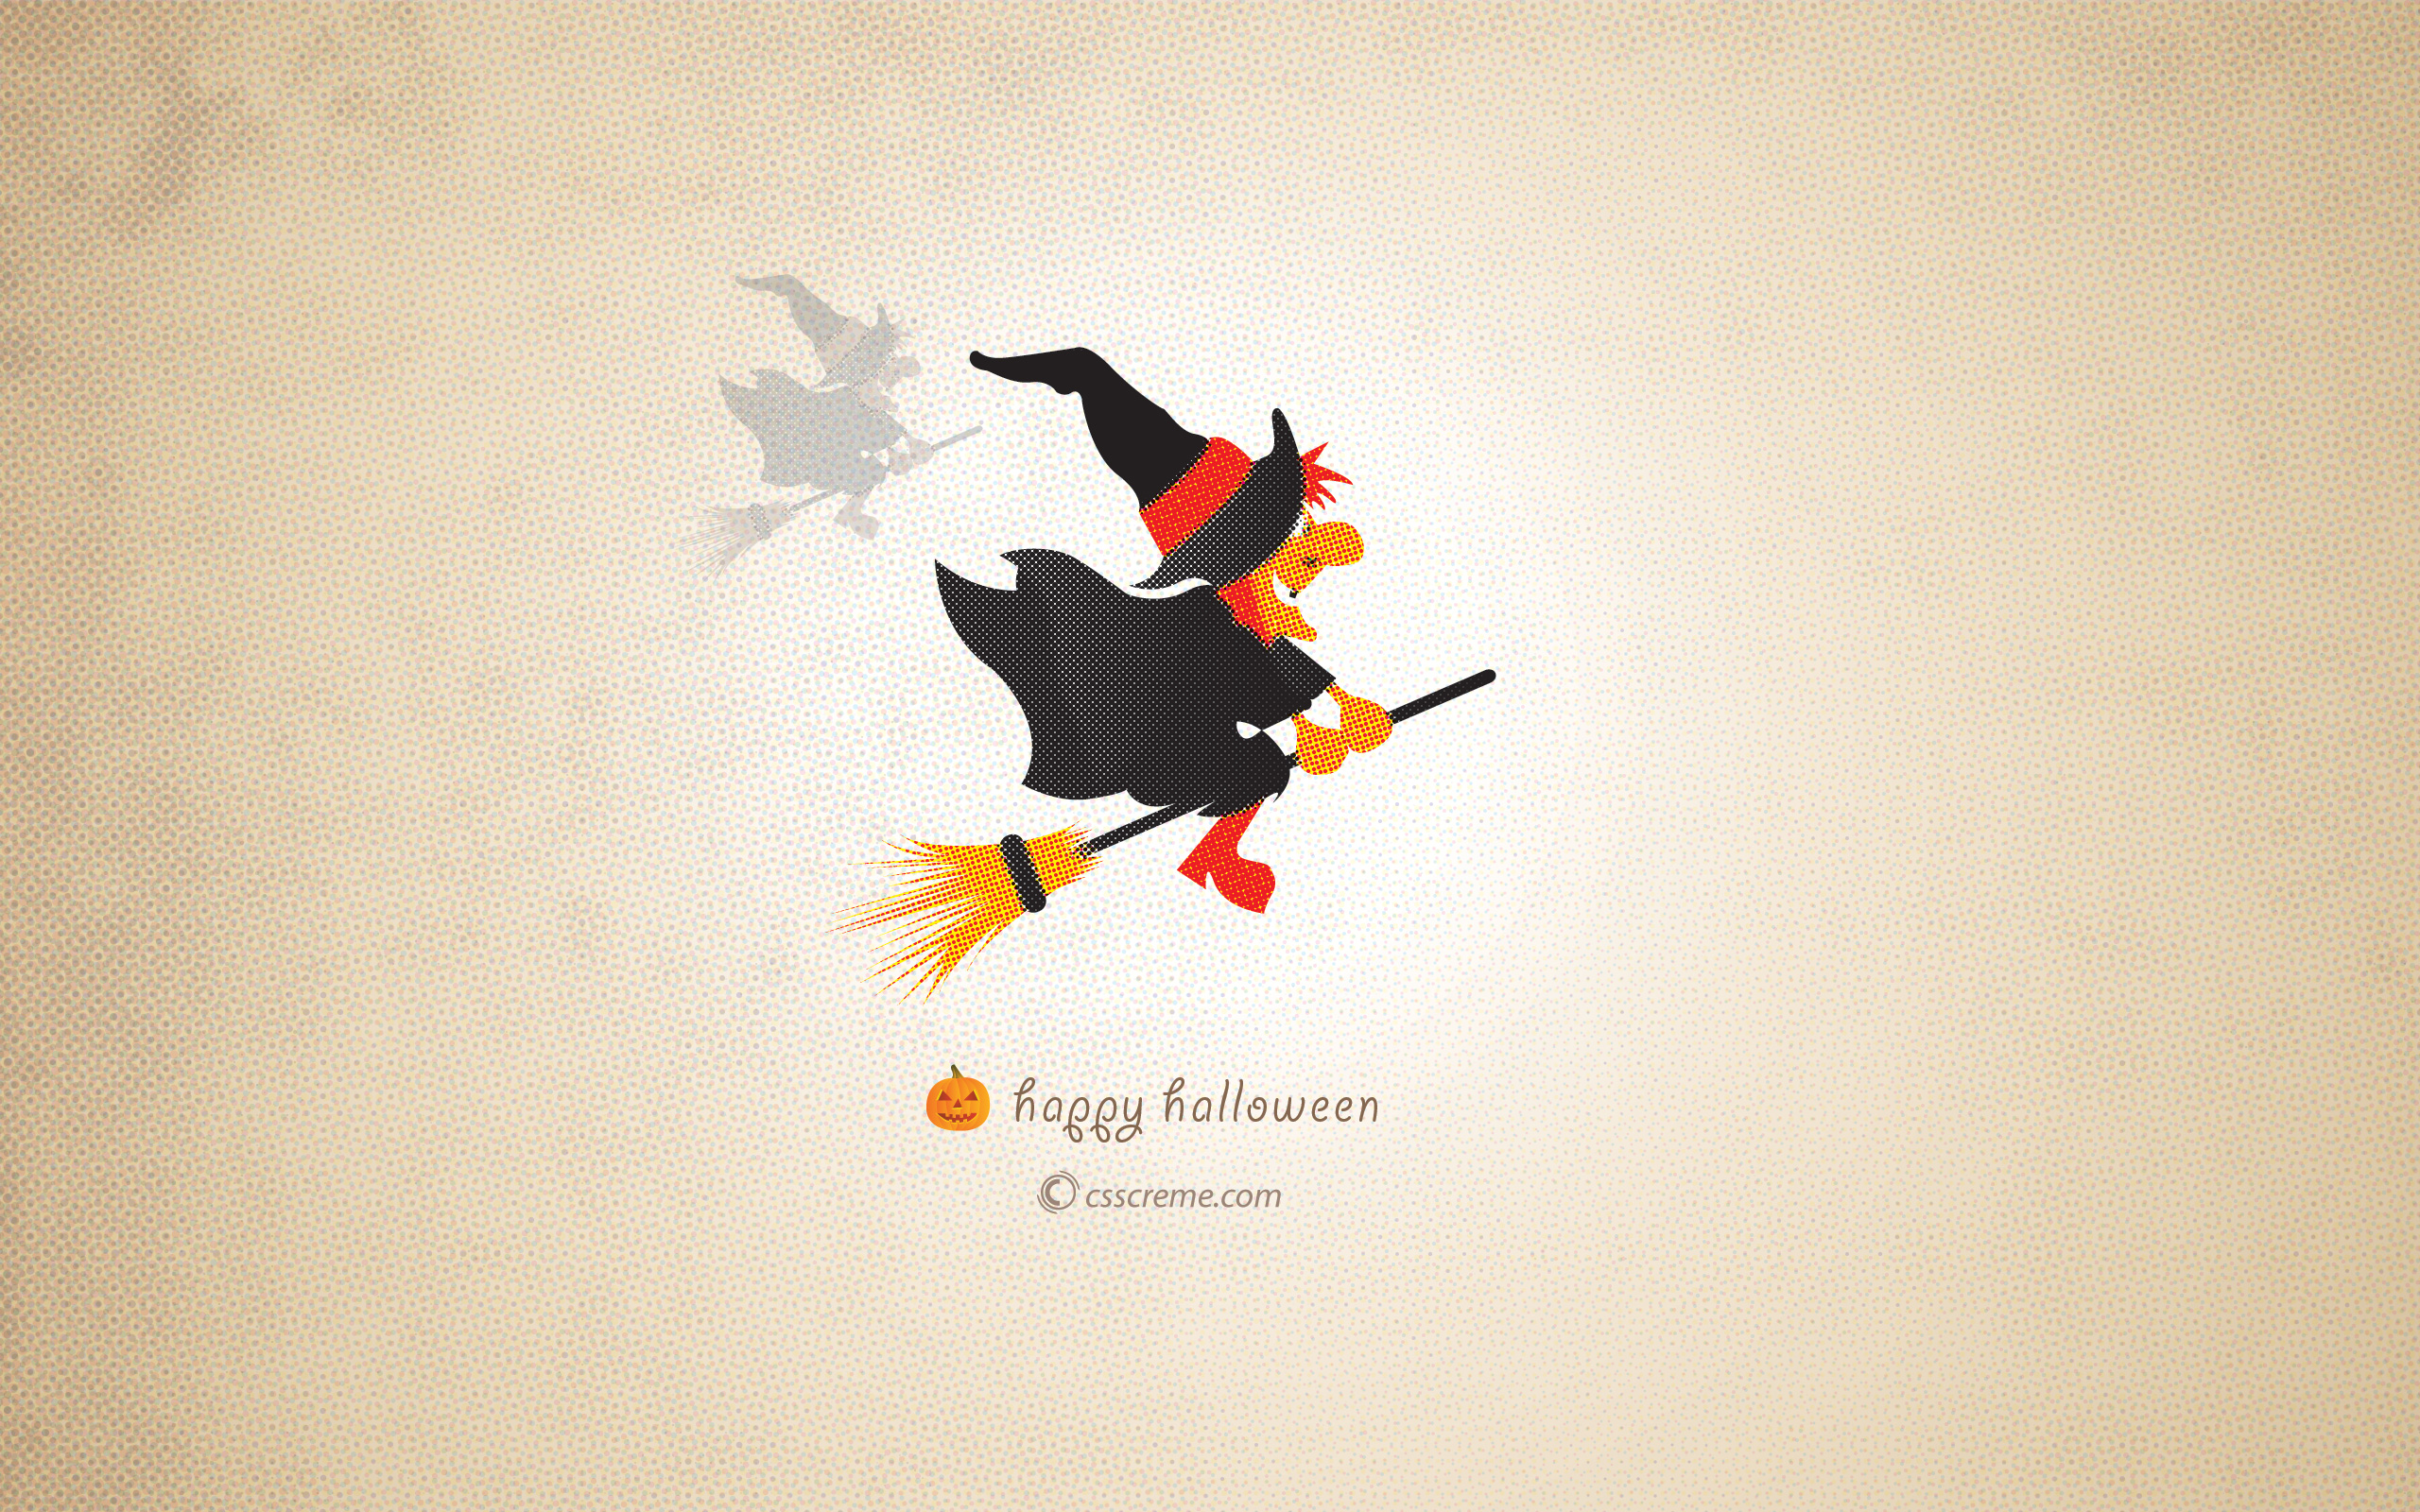 Halloween Witch wallpapers Halloween Witch stock photos 2560x1600